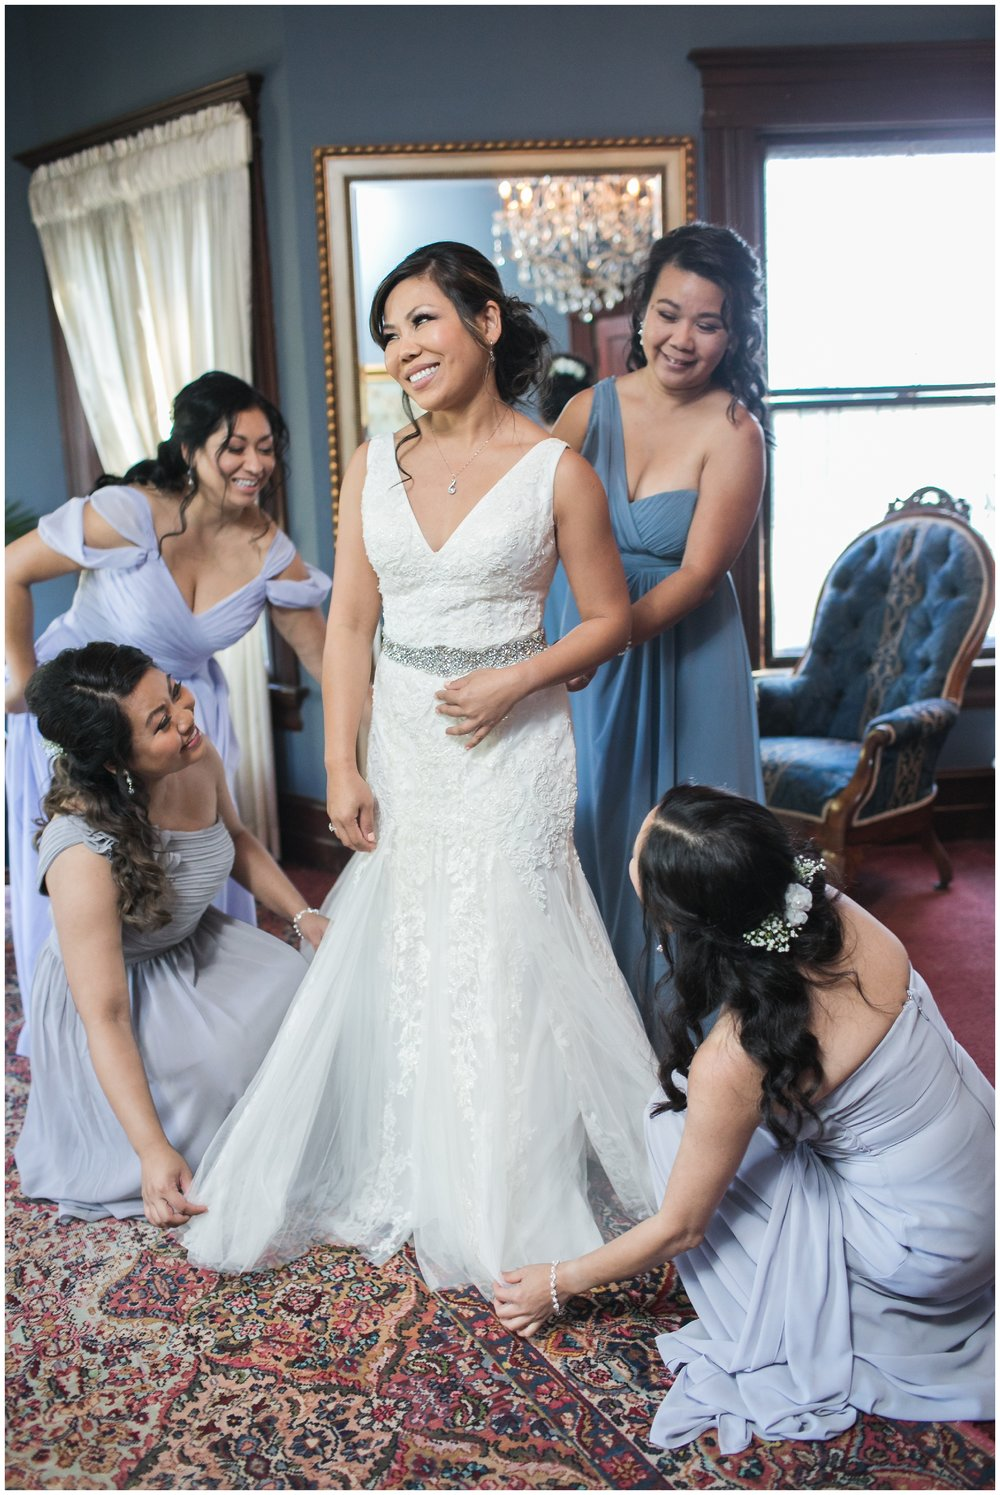 christmas house bridesmaids helping bride into dress carrie vines